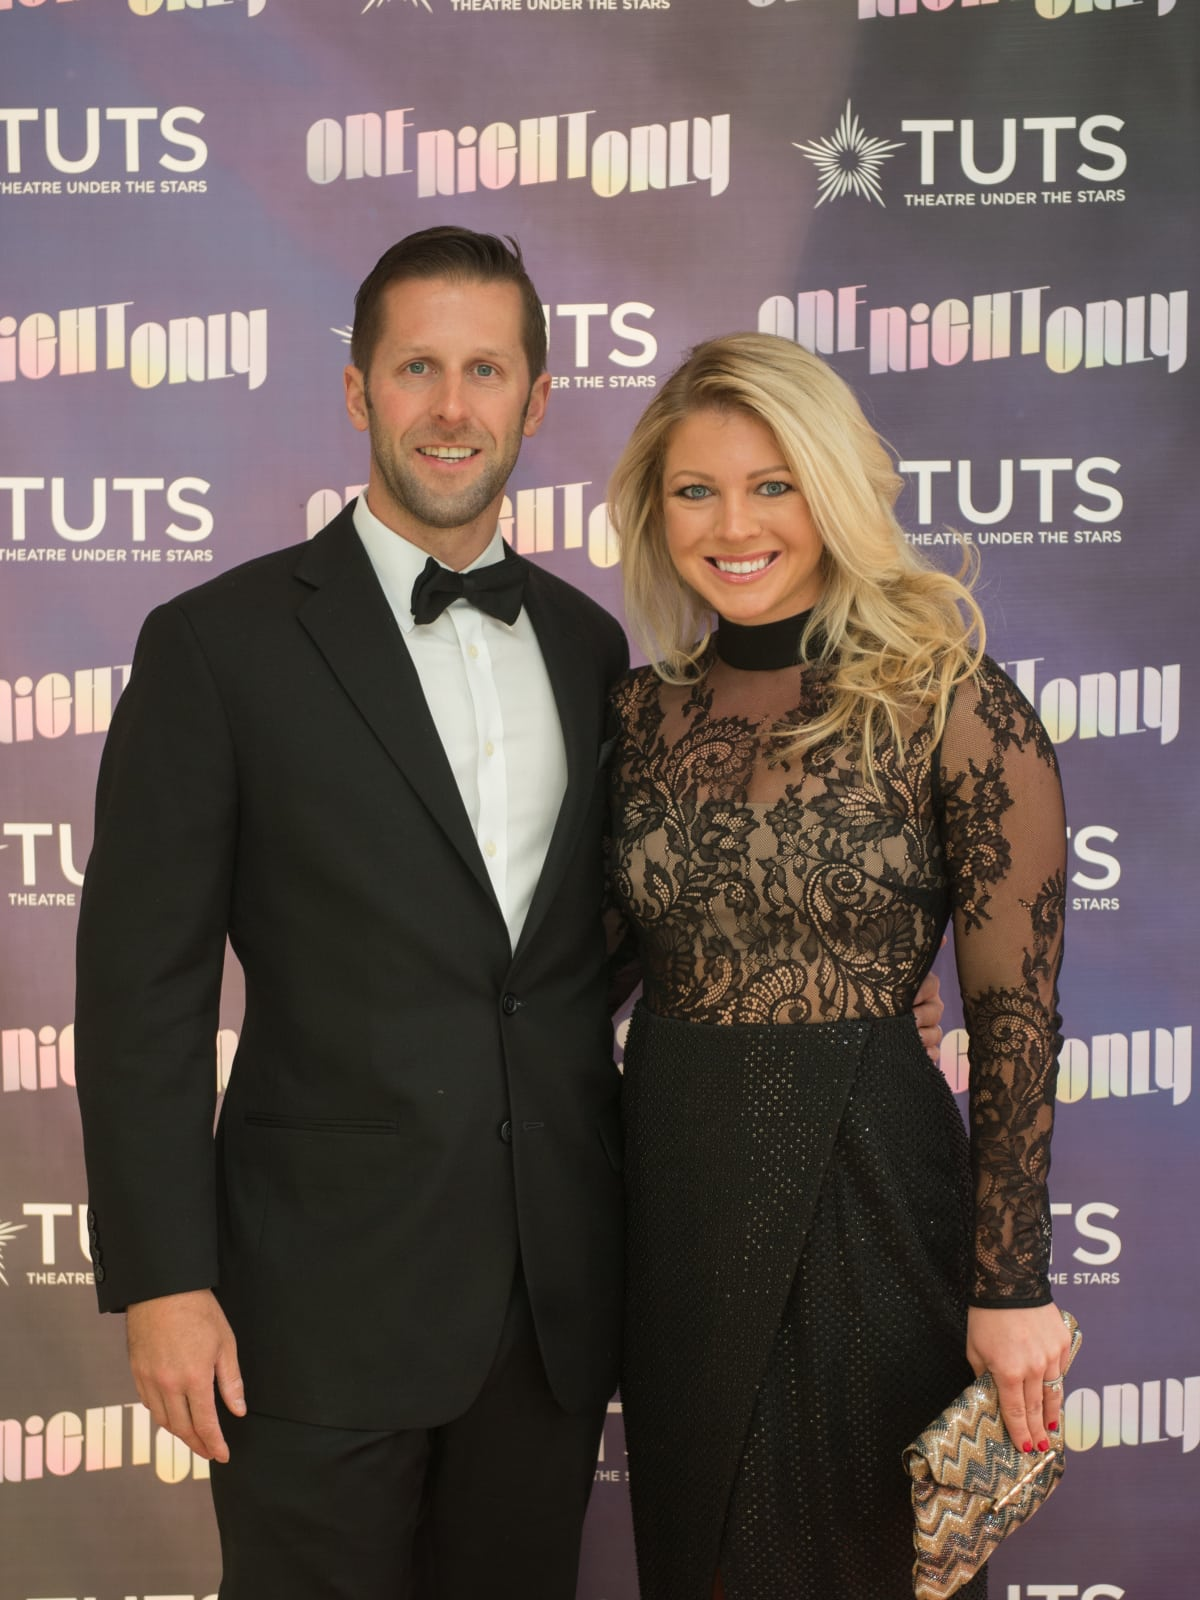 Austin and Marian Cornelius at TUTS Dreamgirls Gala 2017